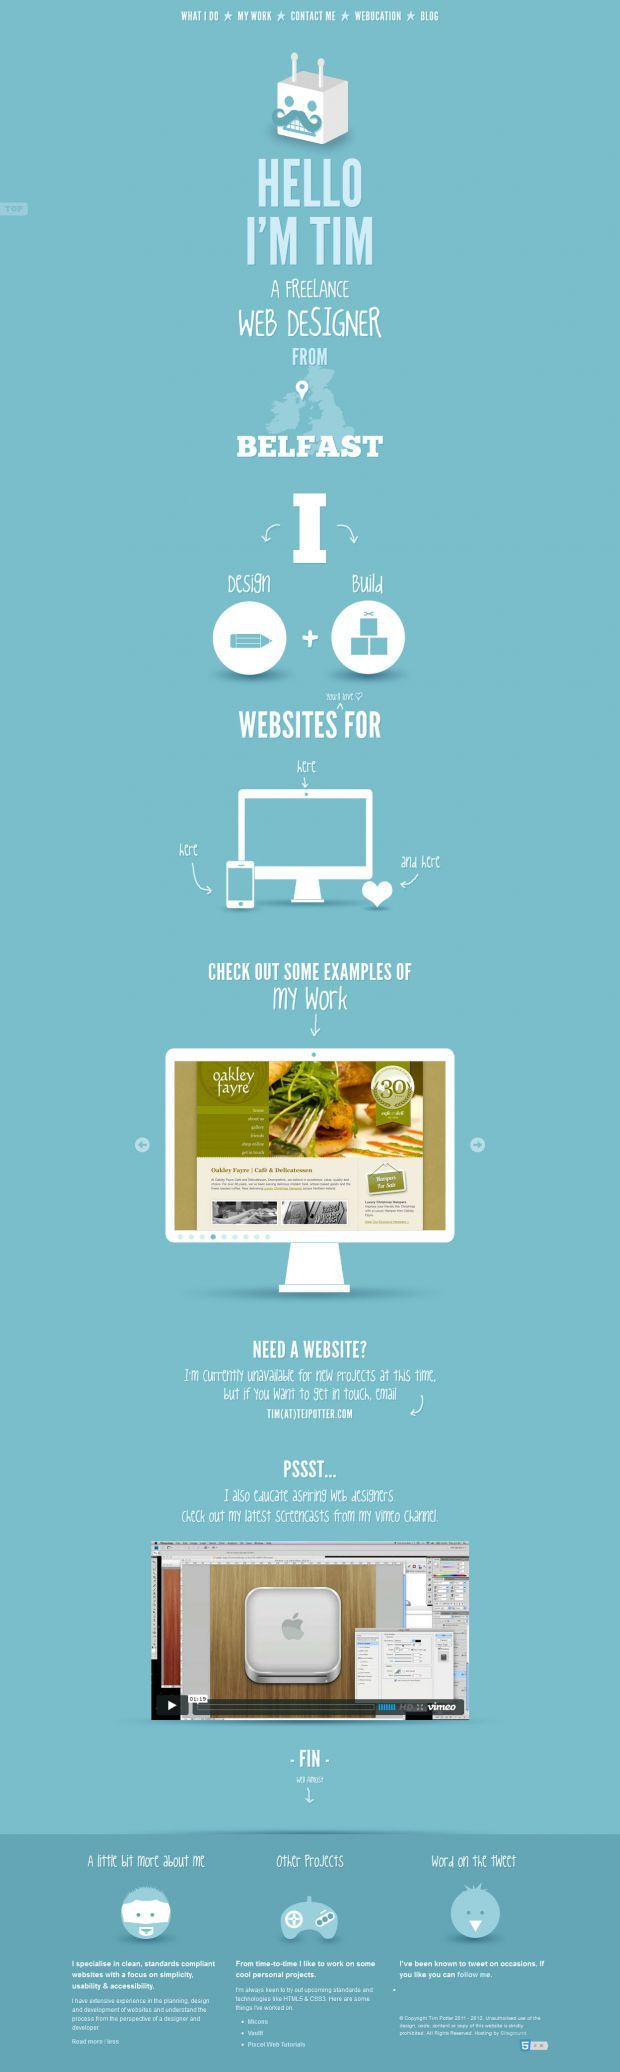 Portfolio of Tim Potter - Belfast Freelance Web Designer - Best website, web design inspiration showcase